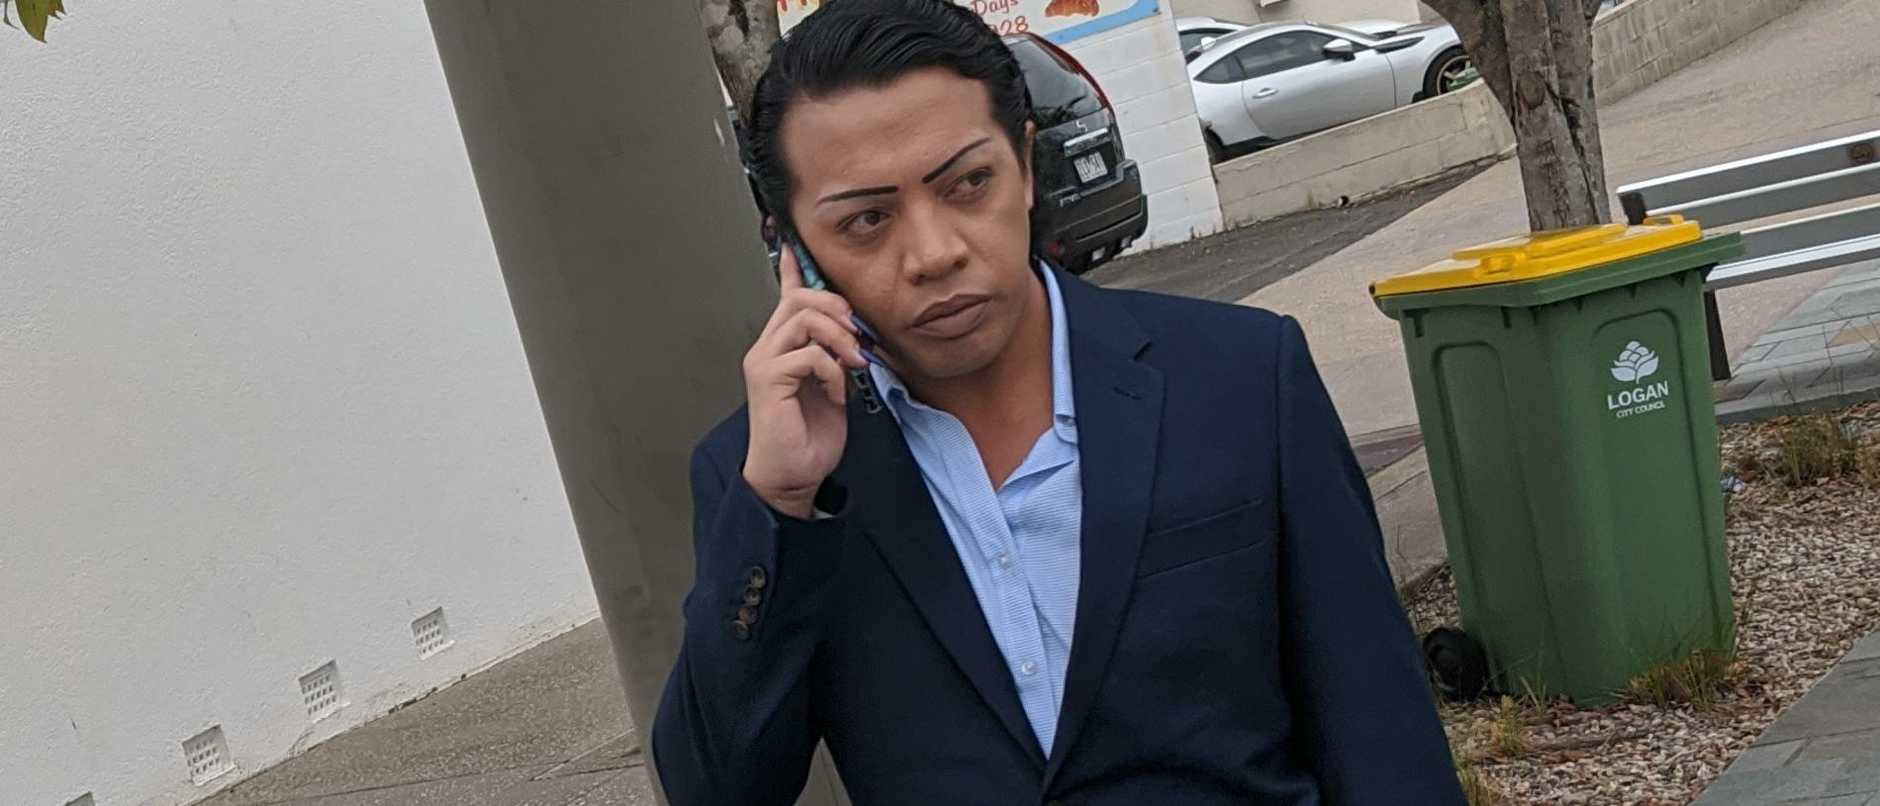 Meadowbrook man Corey Tauariki, 24, was fined $400 in Beenleigh Magistrates Court after pleading guilty to one charge of fraud.